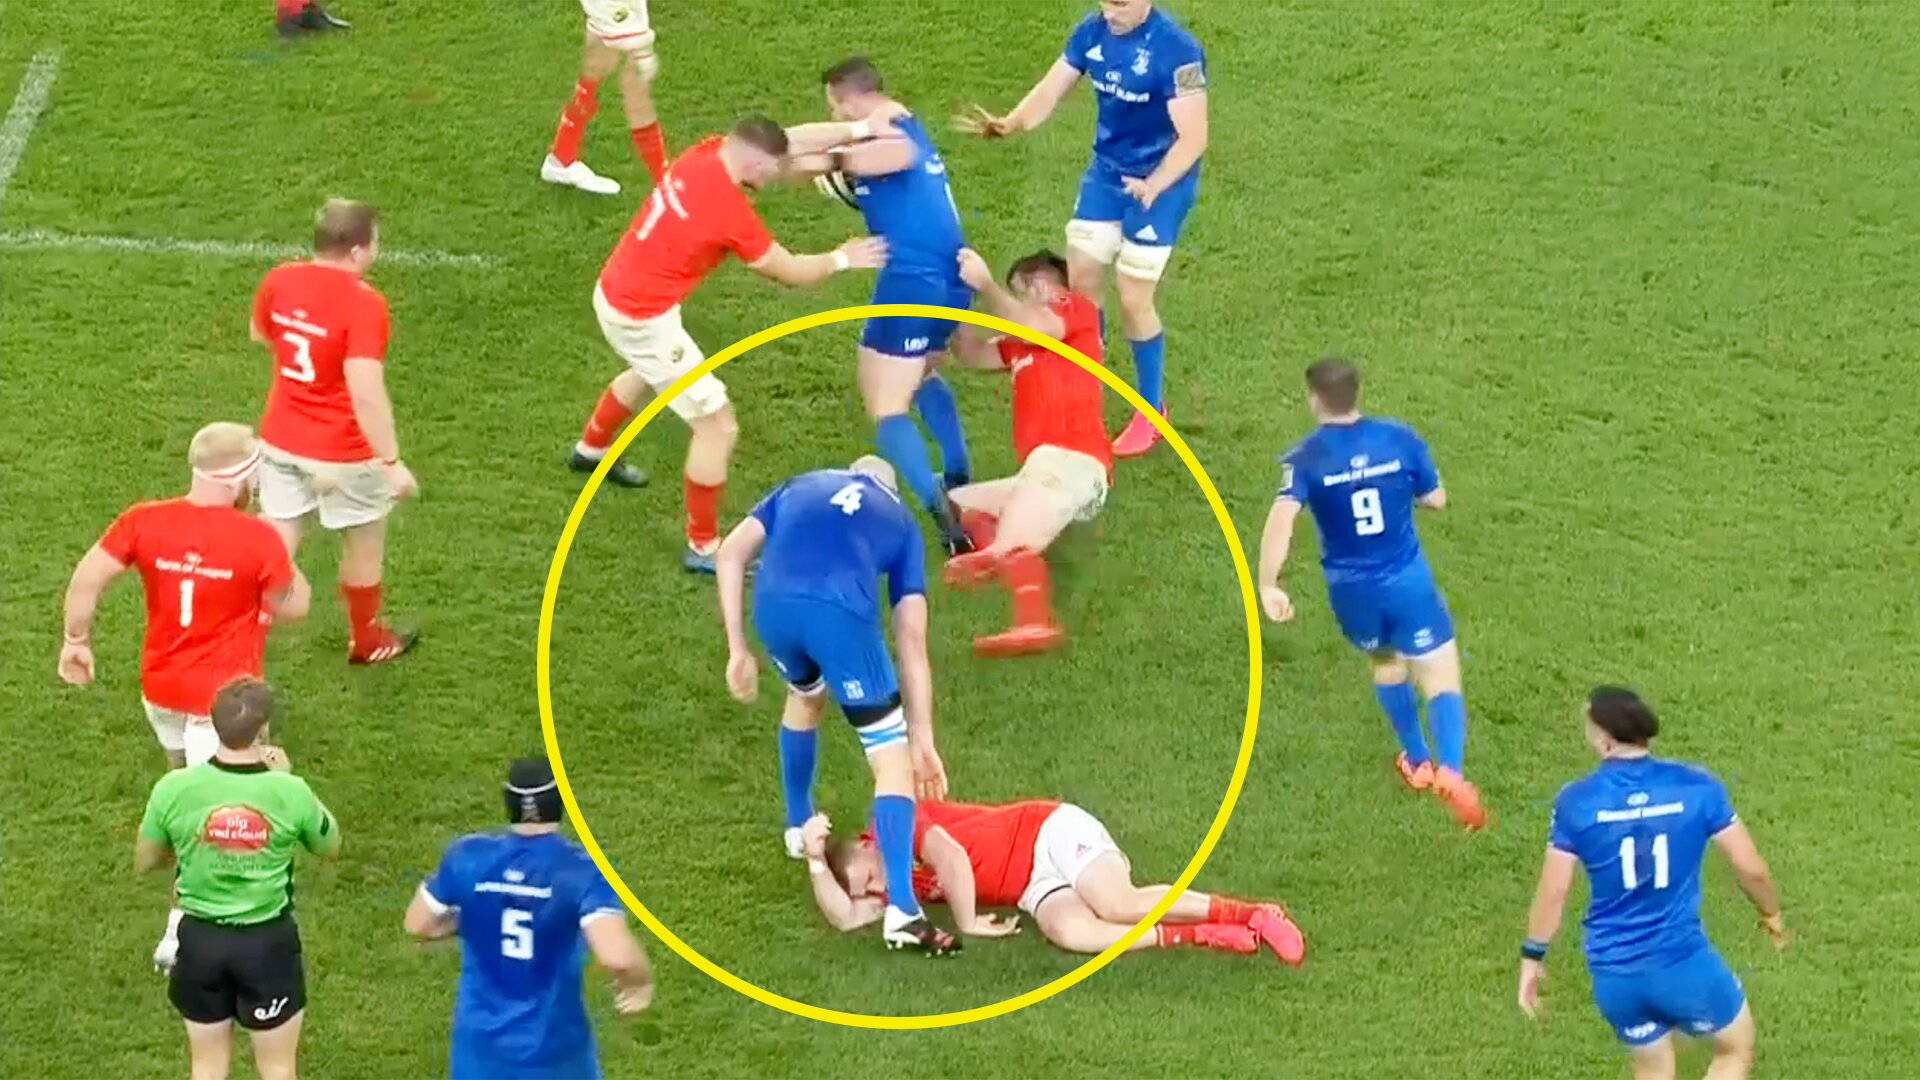 Rugby fans are stunned by this Devin Toner moment in last night's Irish derby clash